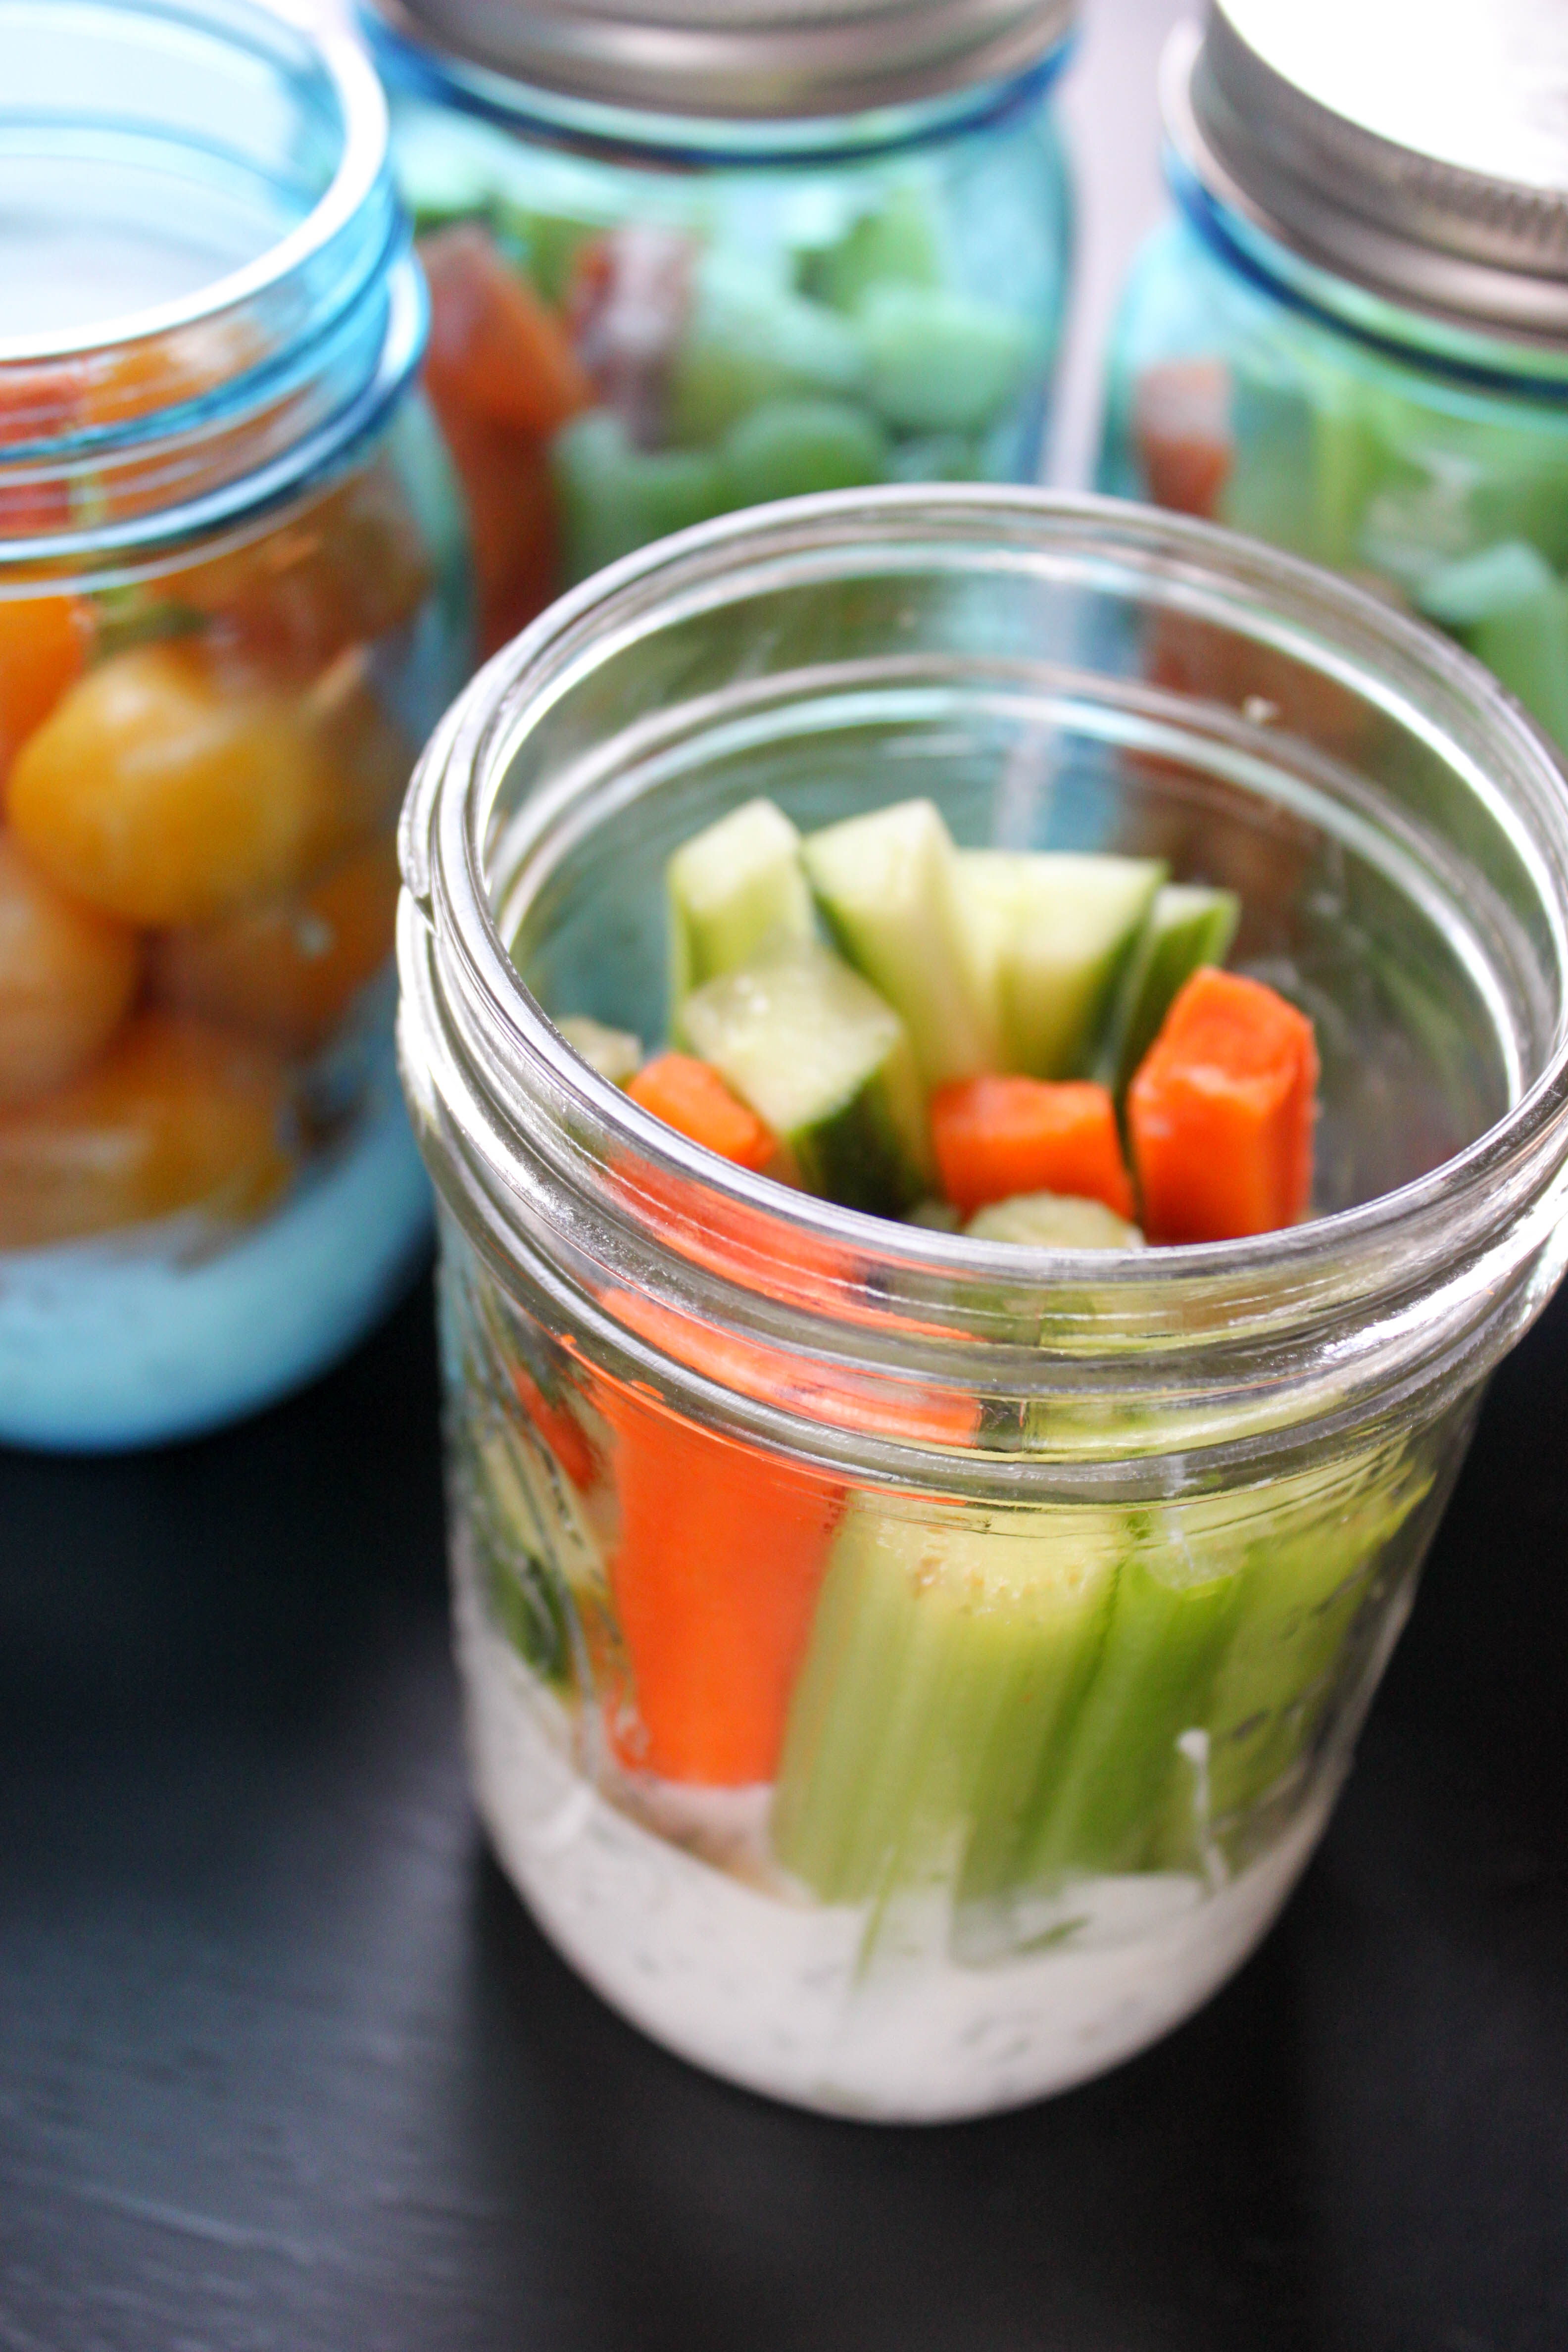 Veggies with Homemade, Healthy Ranch Dip